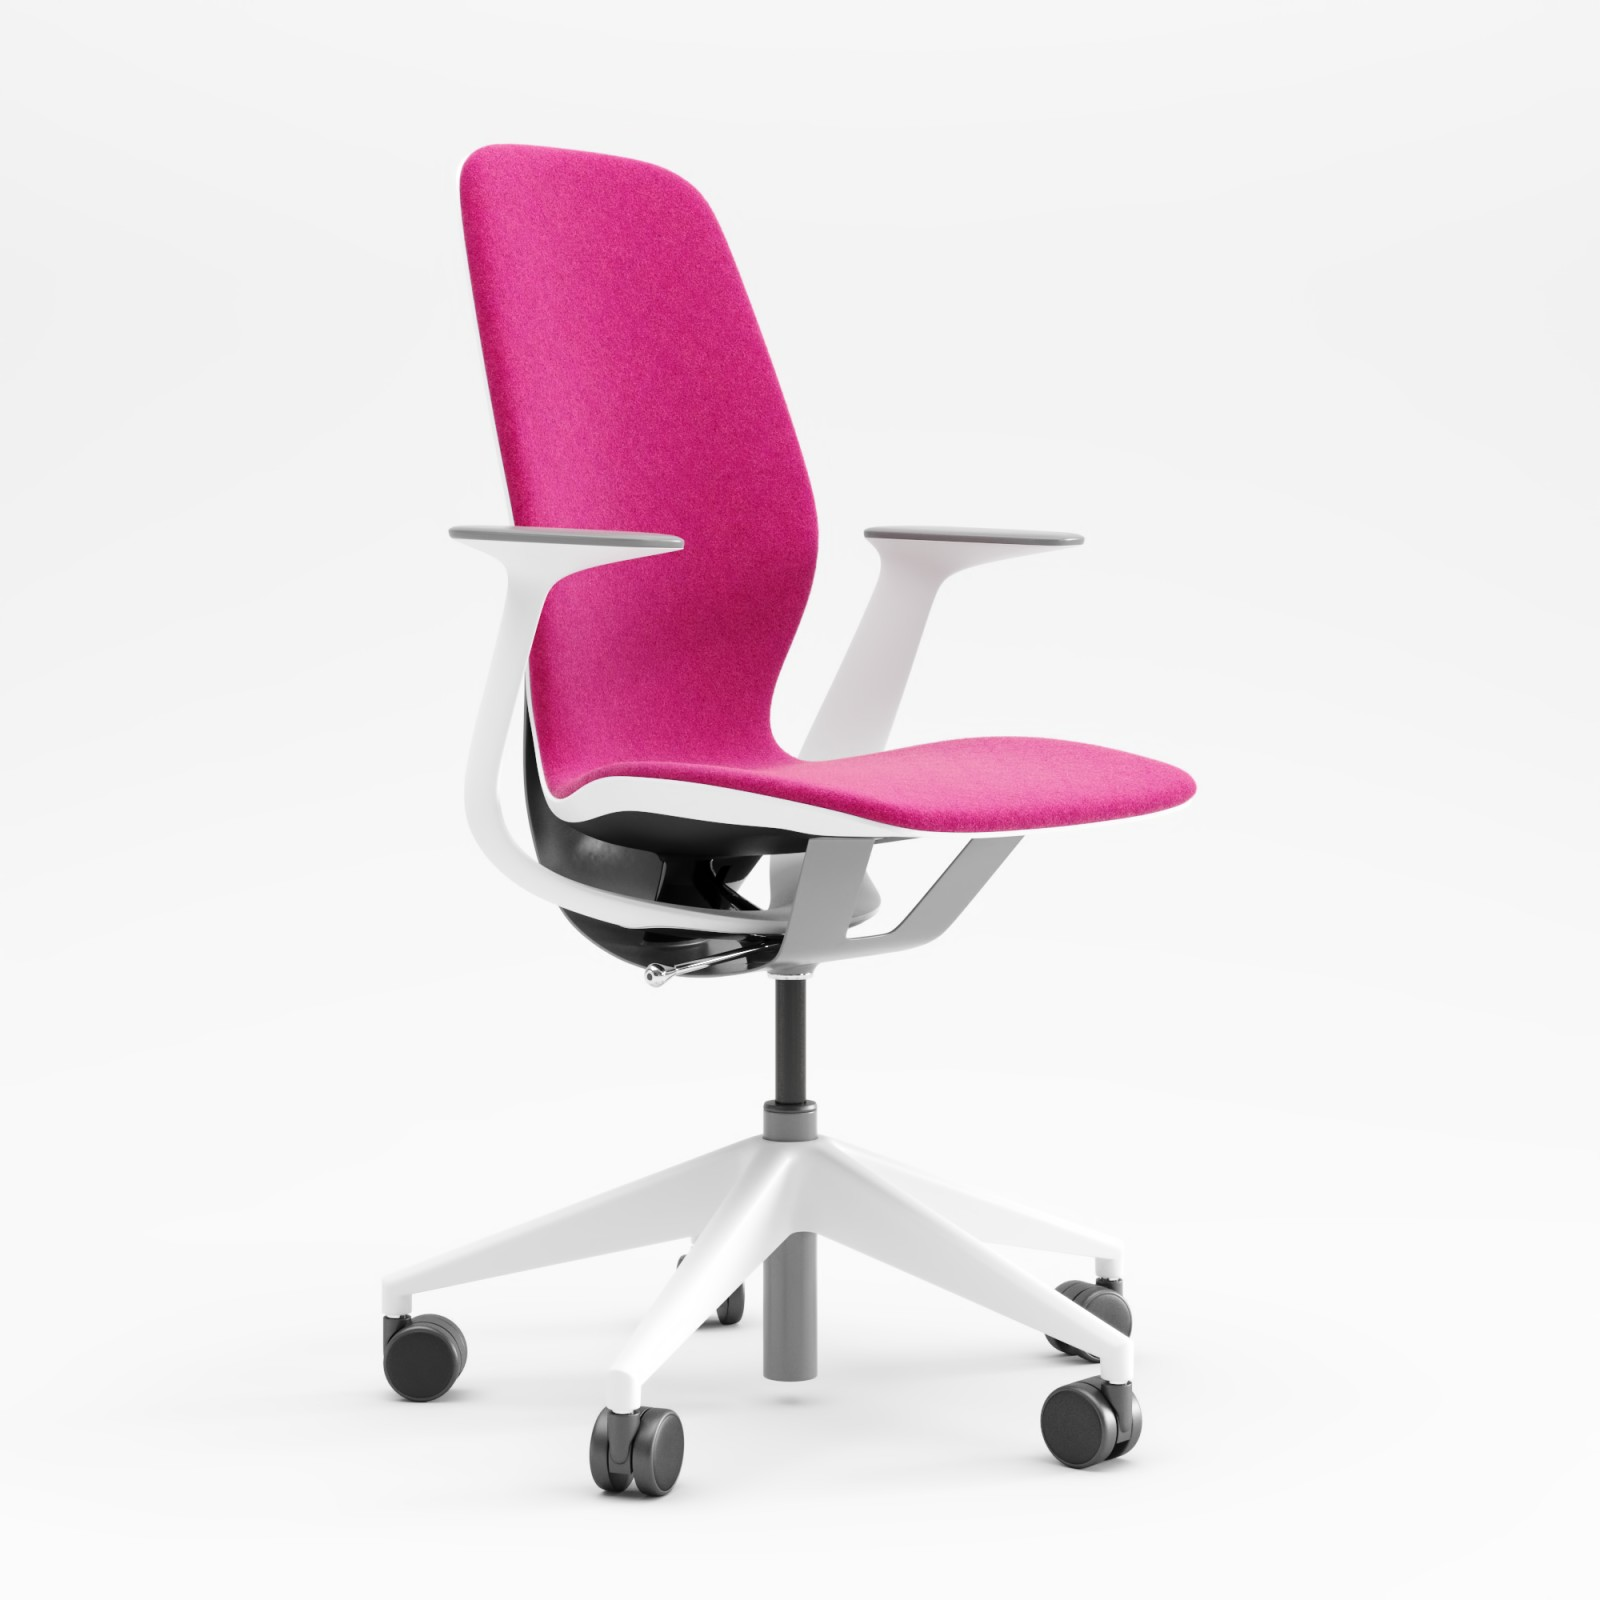 SILQ Task and Office Chair